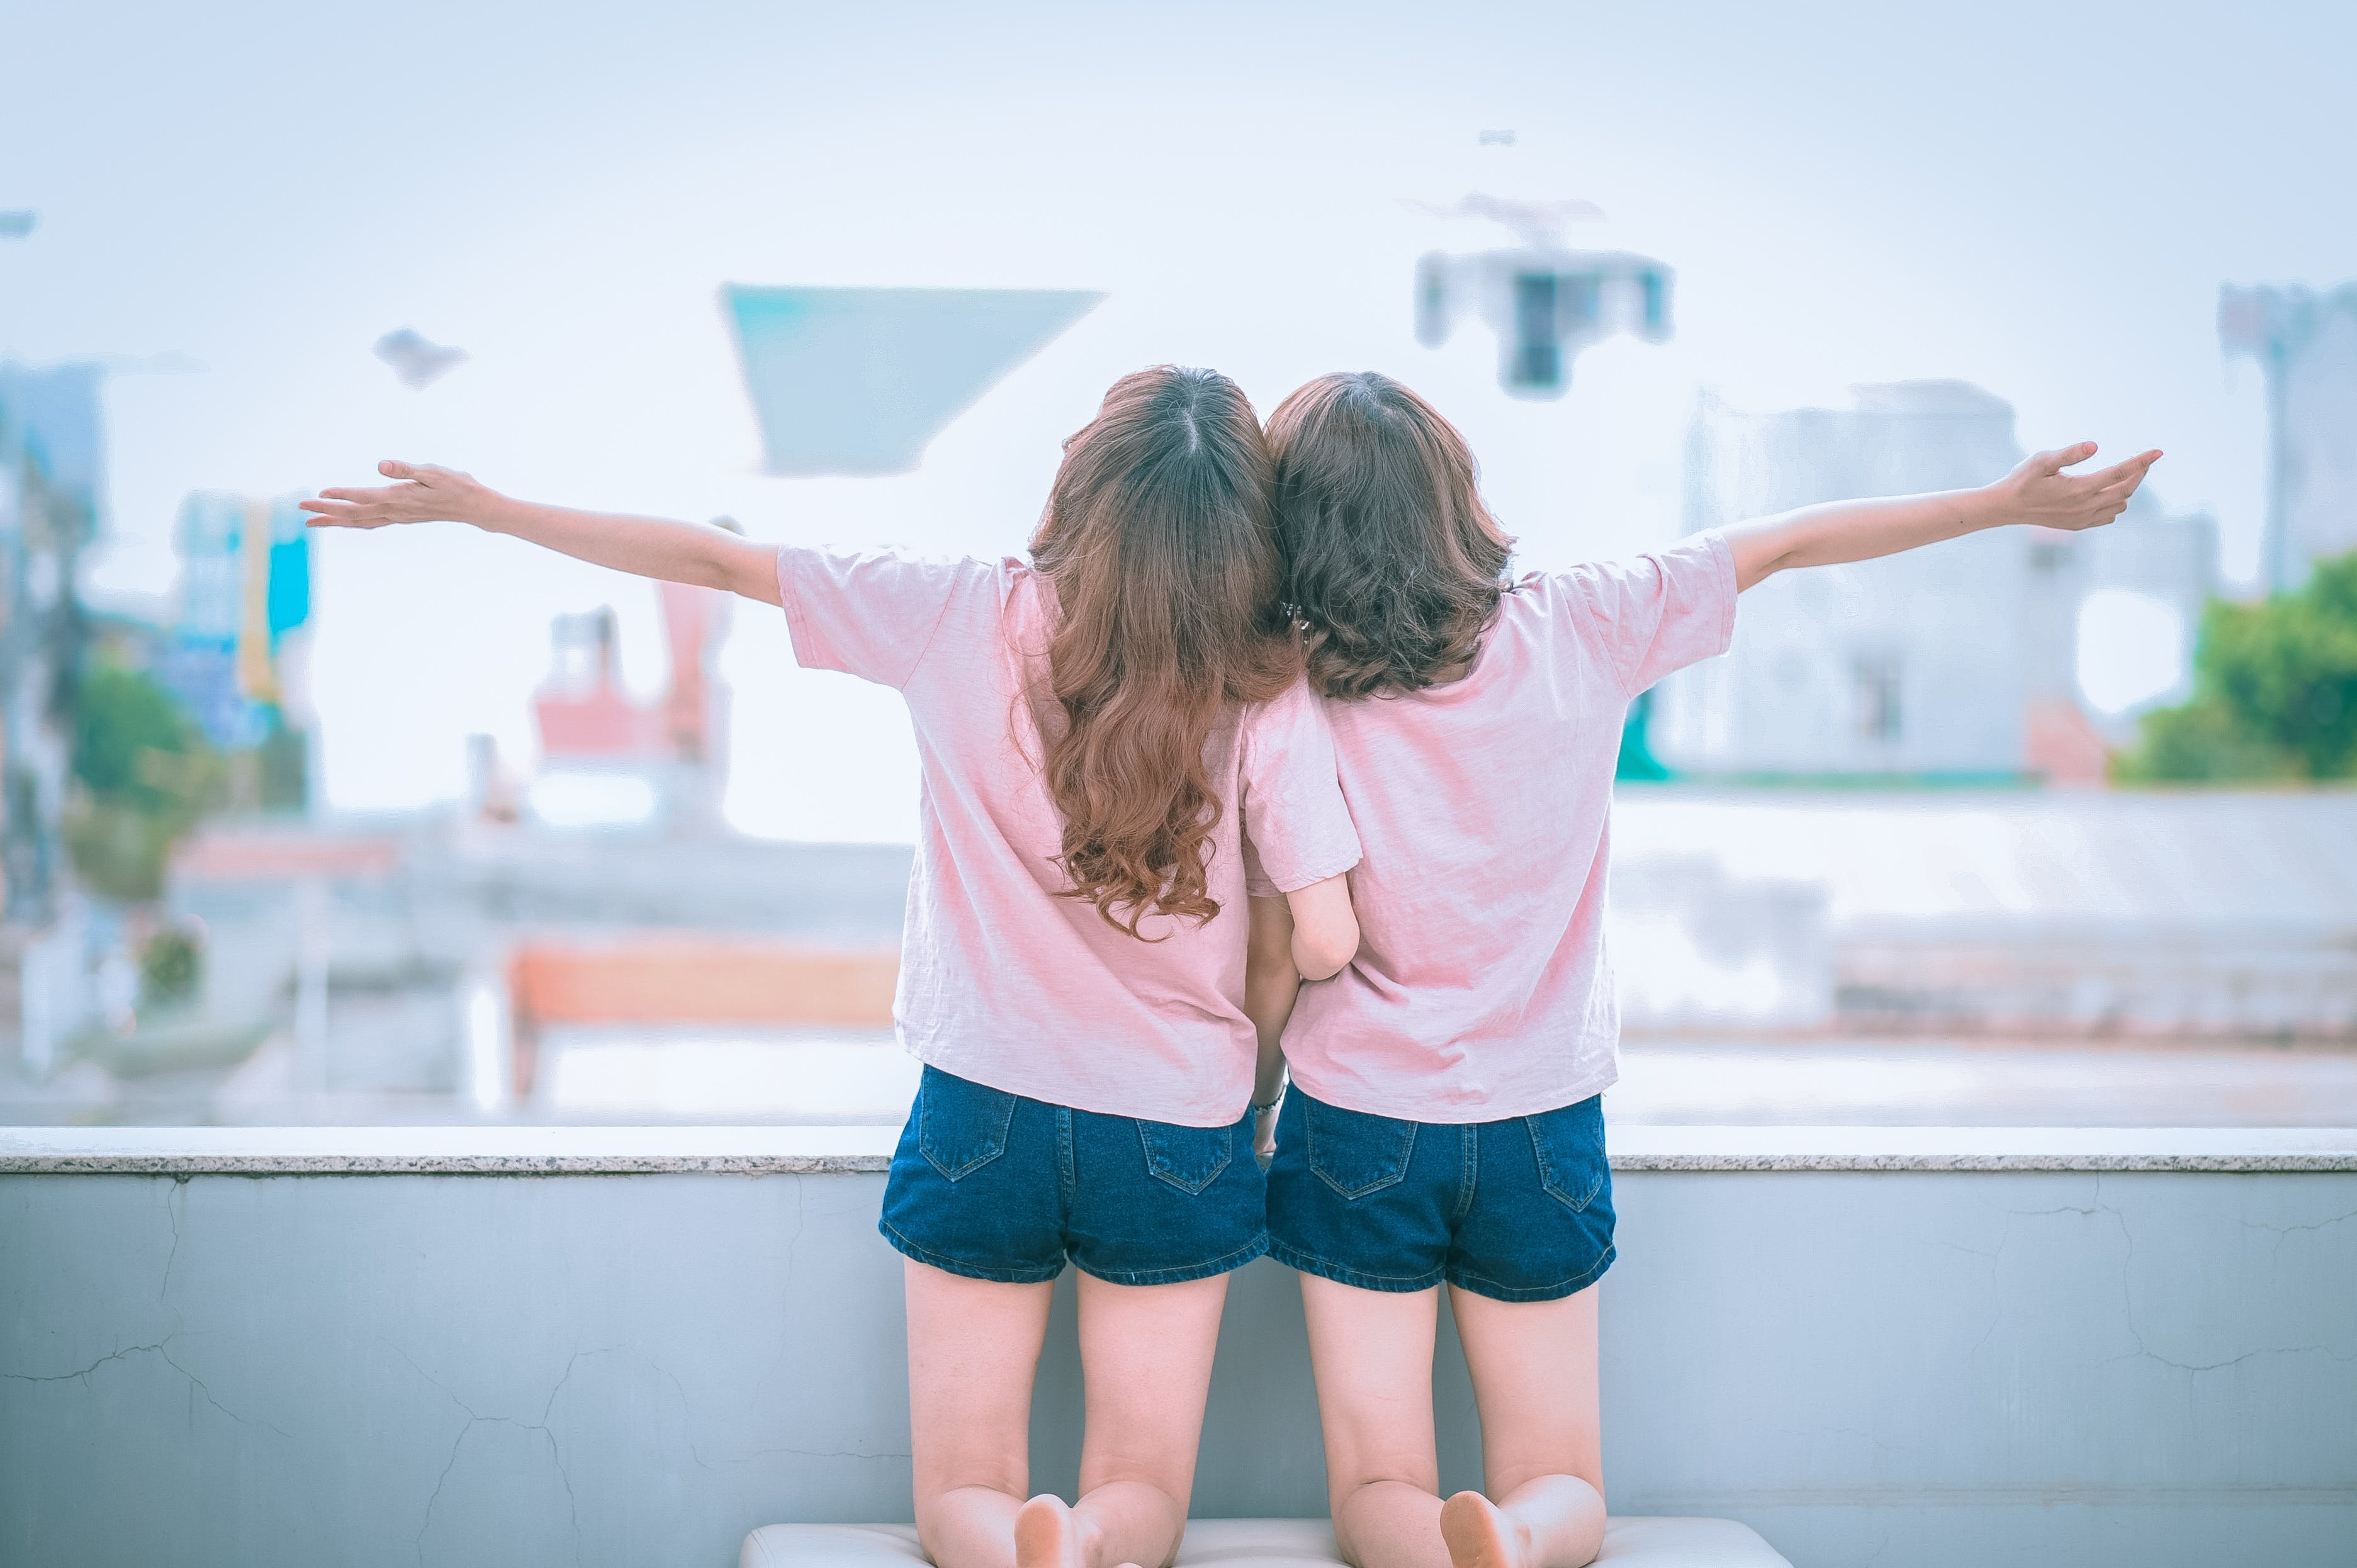 Two Girls Spreading Arms Together While Kneeling